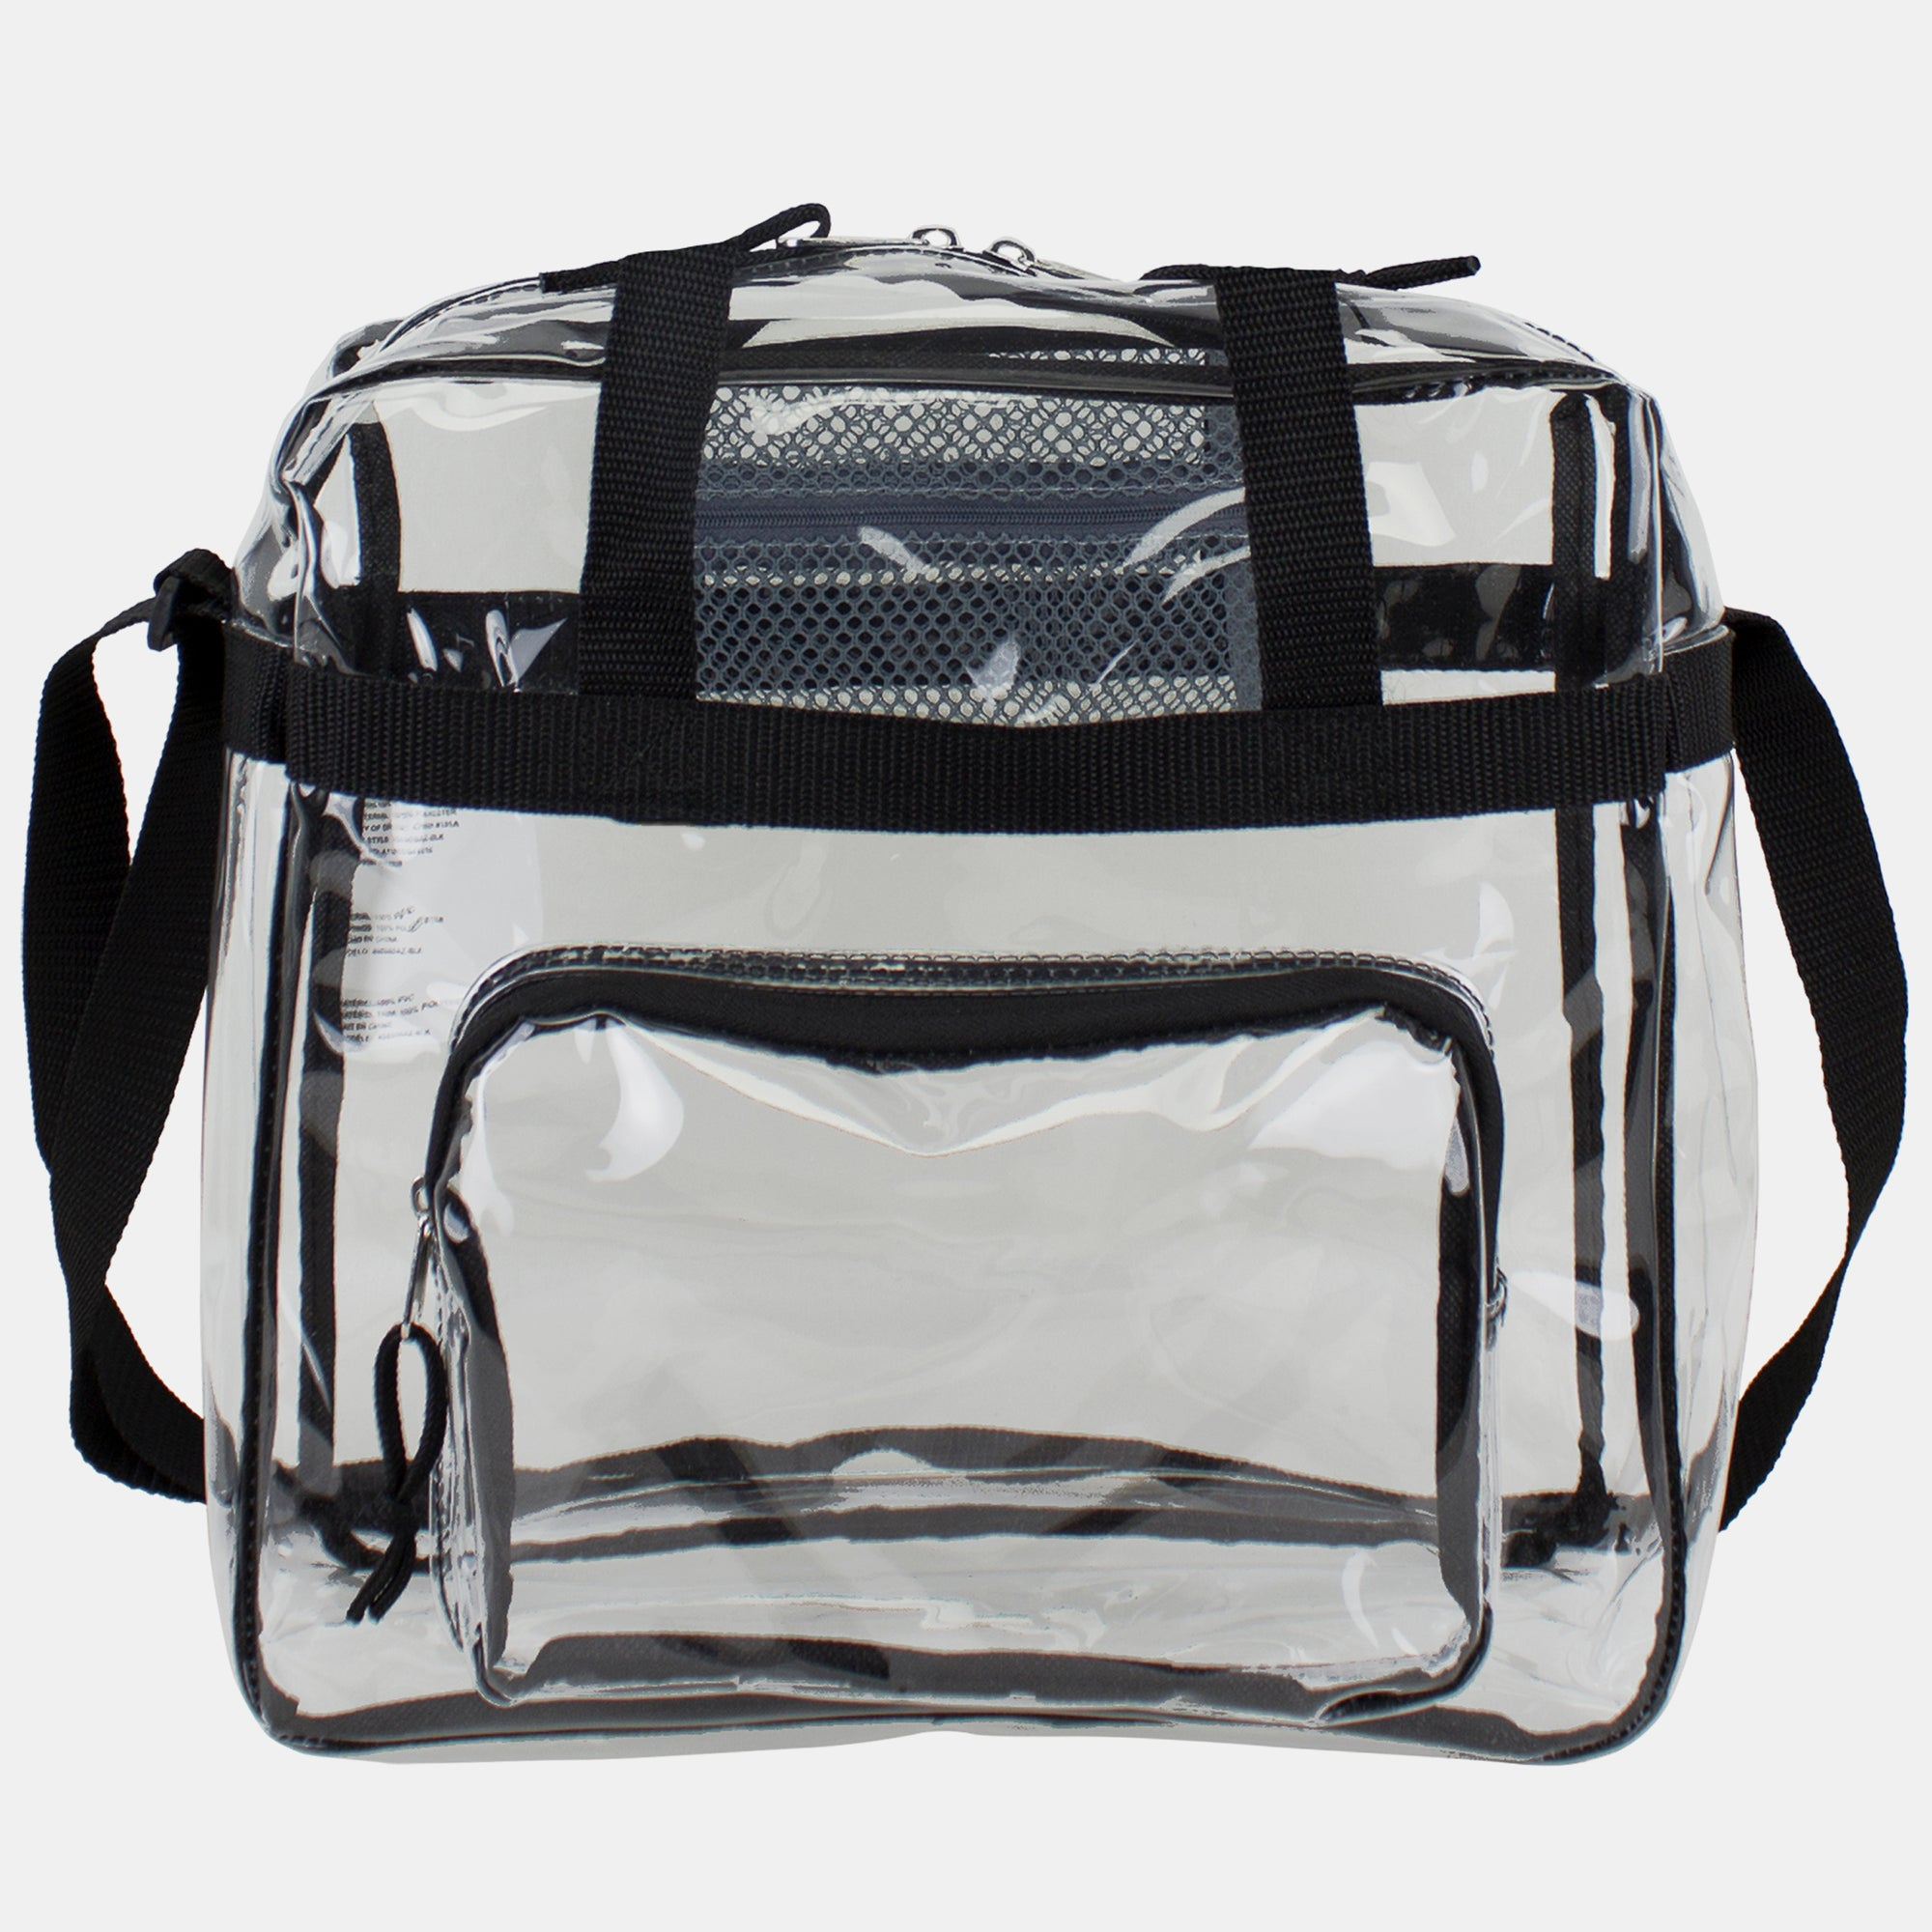 Eastsport Clear NFL Stadium Tote Bag